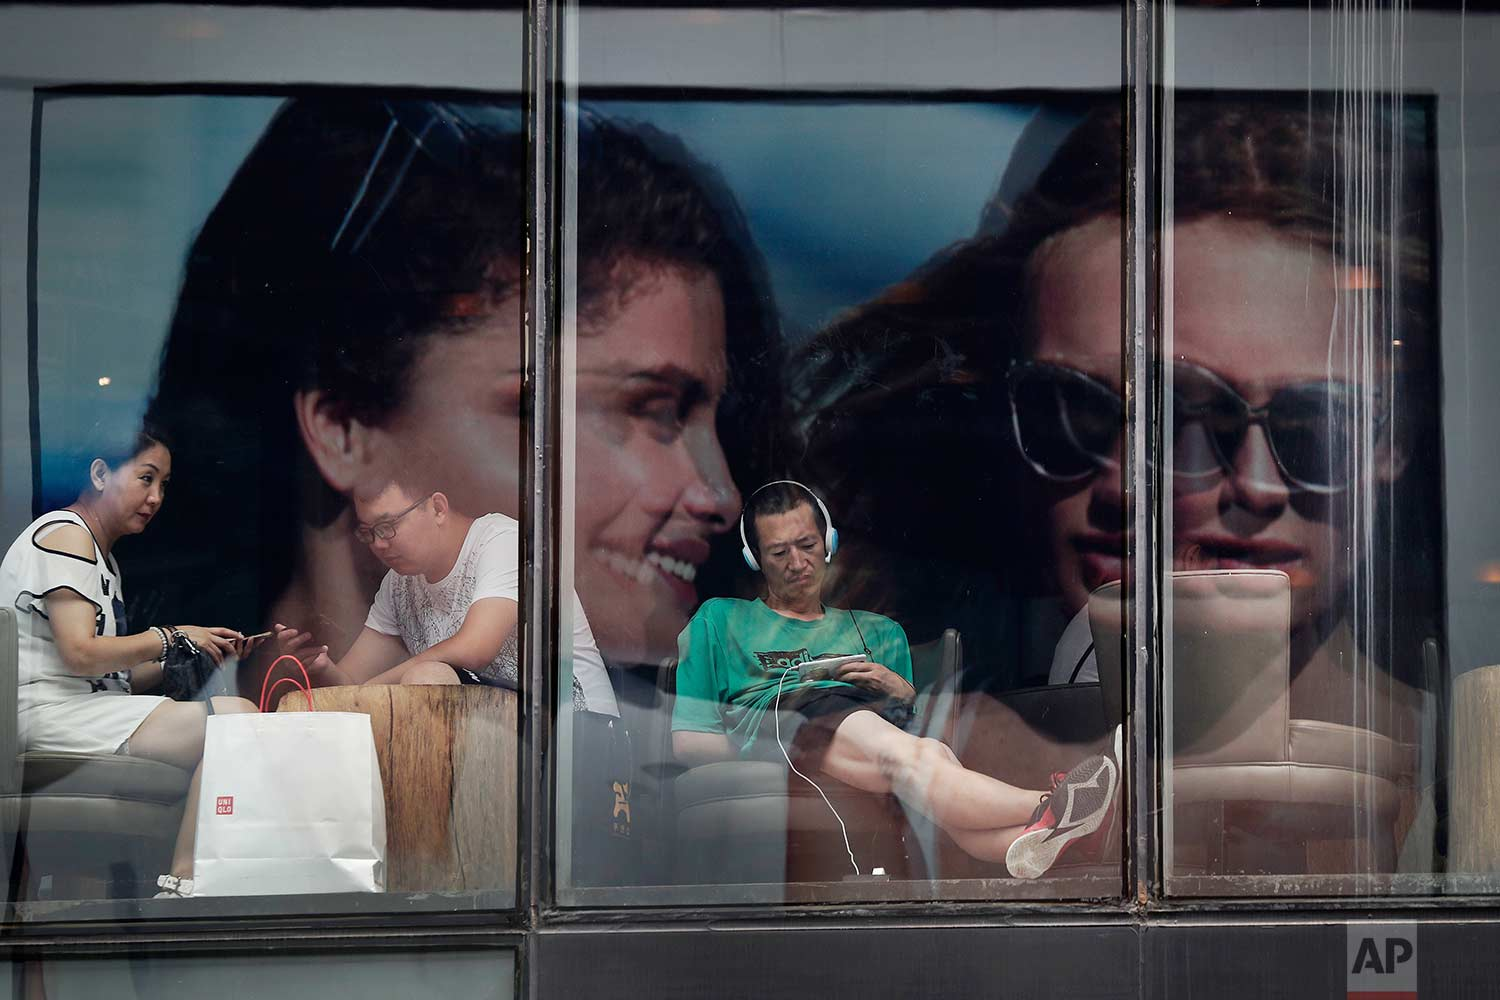 With a fashion advertisement billboard reflected in the windows, people spend time in a cafe at a shopping mall in Beijing, on Monday, July 17, 2017. (AP Photo/Andy Wong)